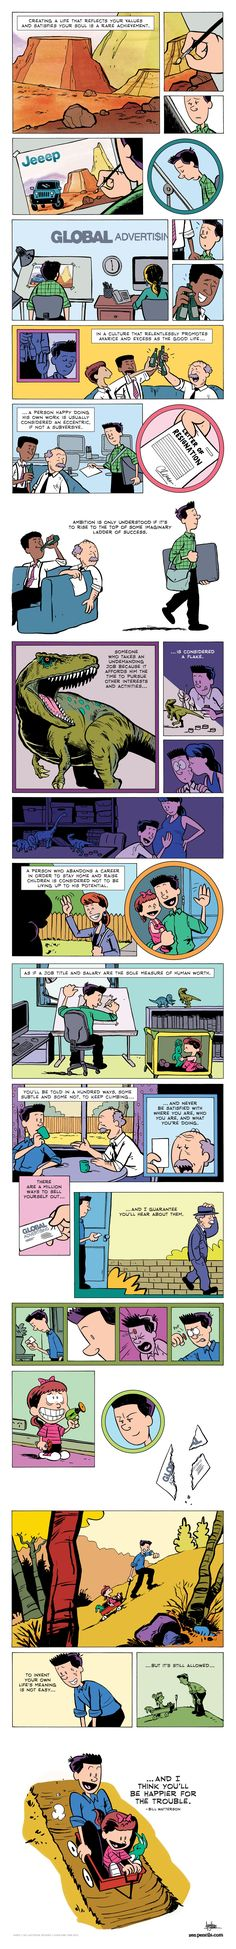 Cartoonist Illustrates Bill Watterson's Advice in the Style of Calvin and Hobbes - A MUST READ!!!